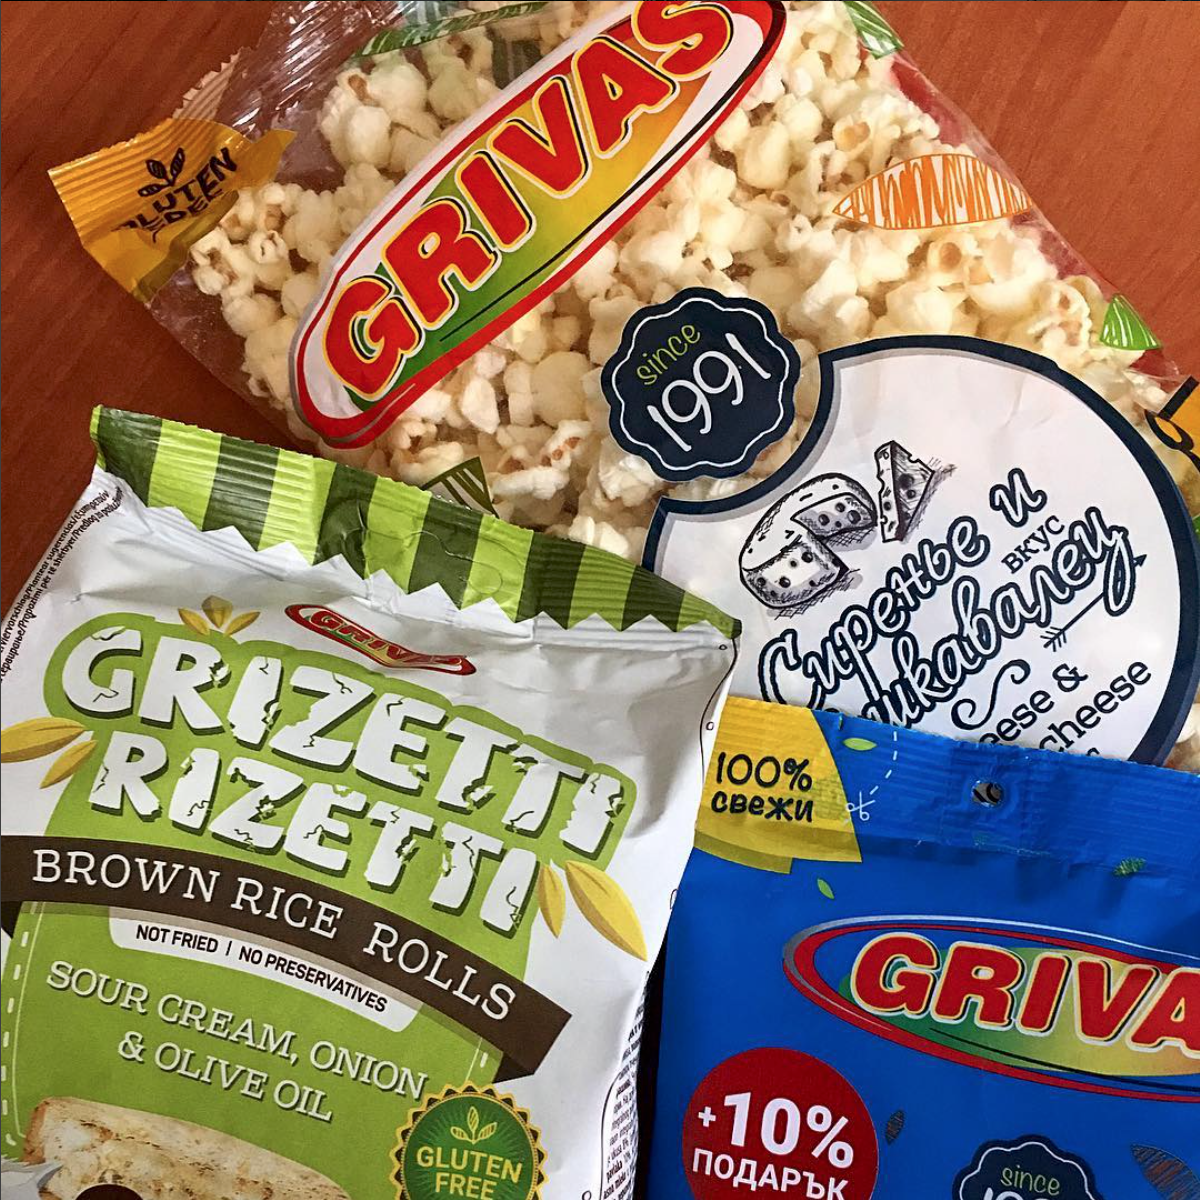 Grivas-products